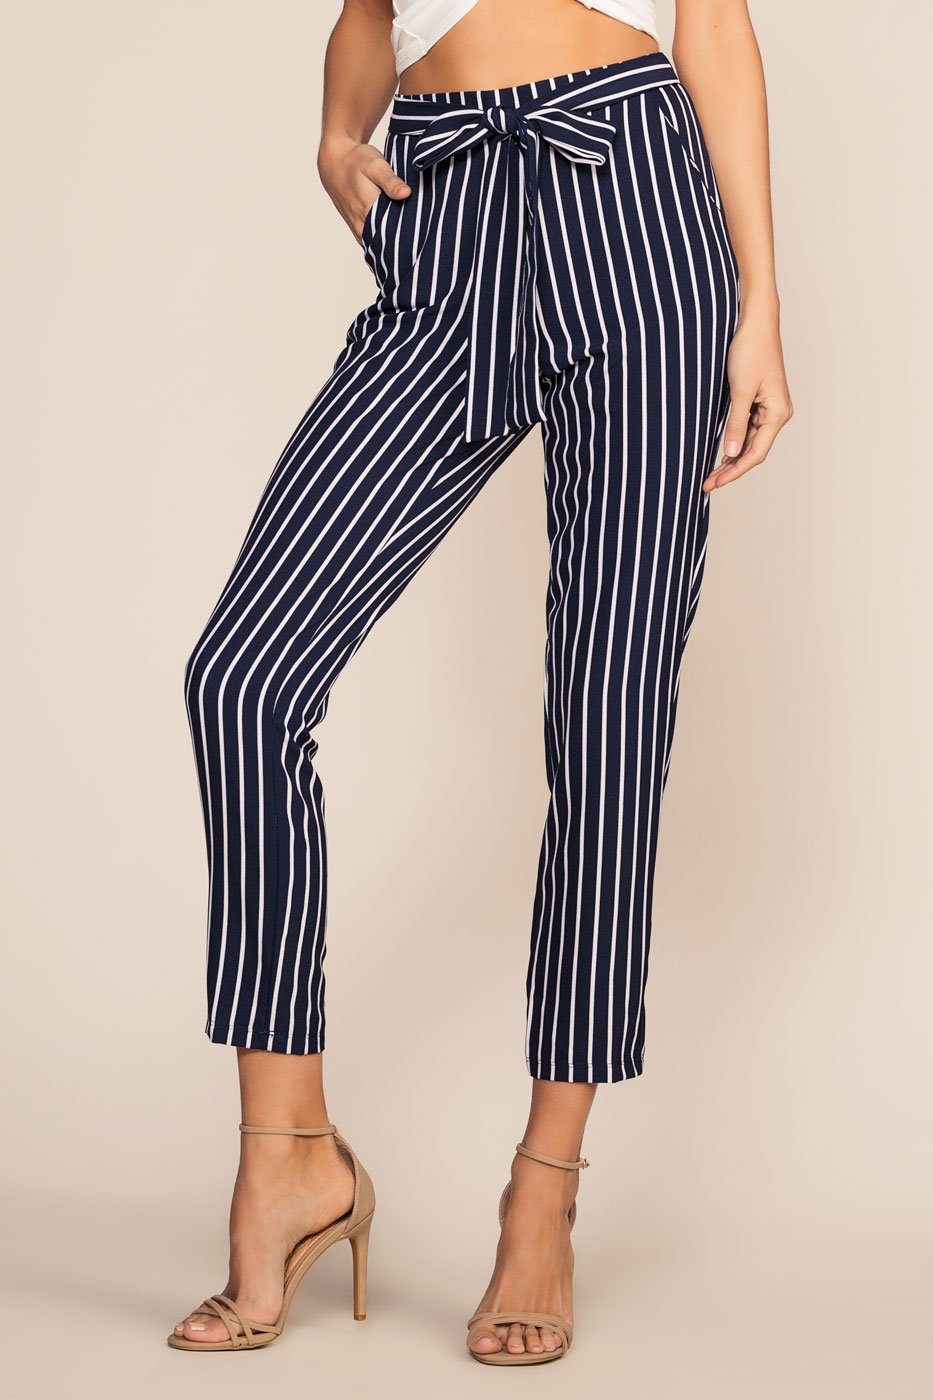 Navy Stripe Highwaist Crop pants